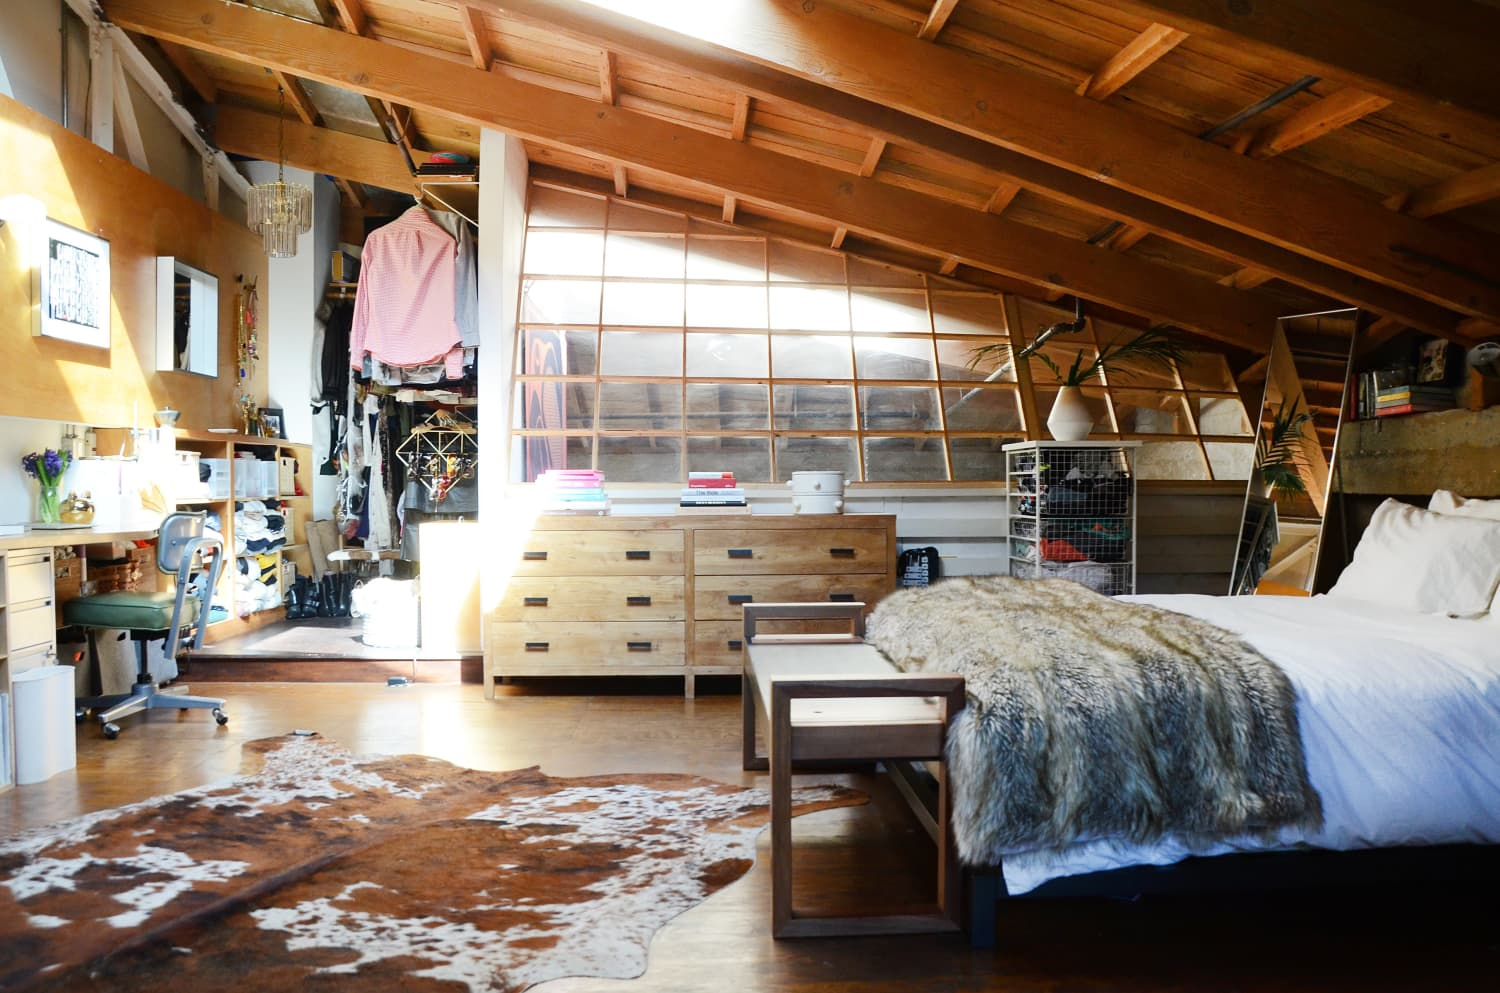 4 Things You Should Never Do If You Live in a Loft